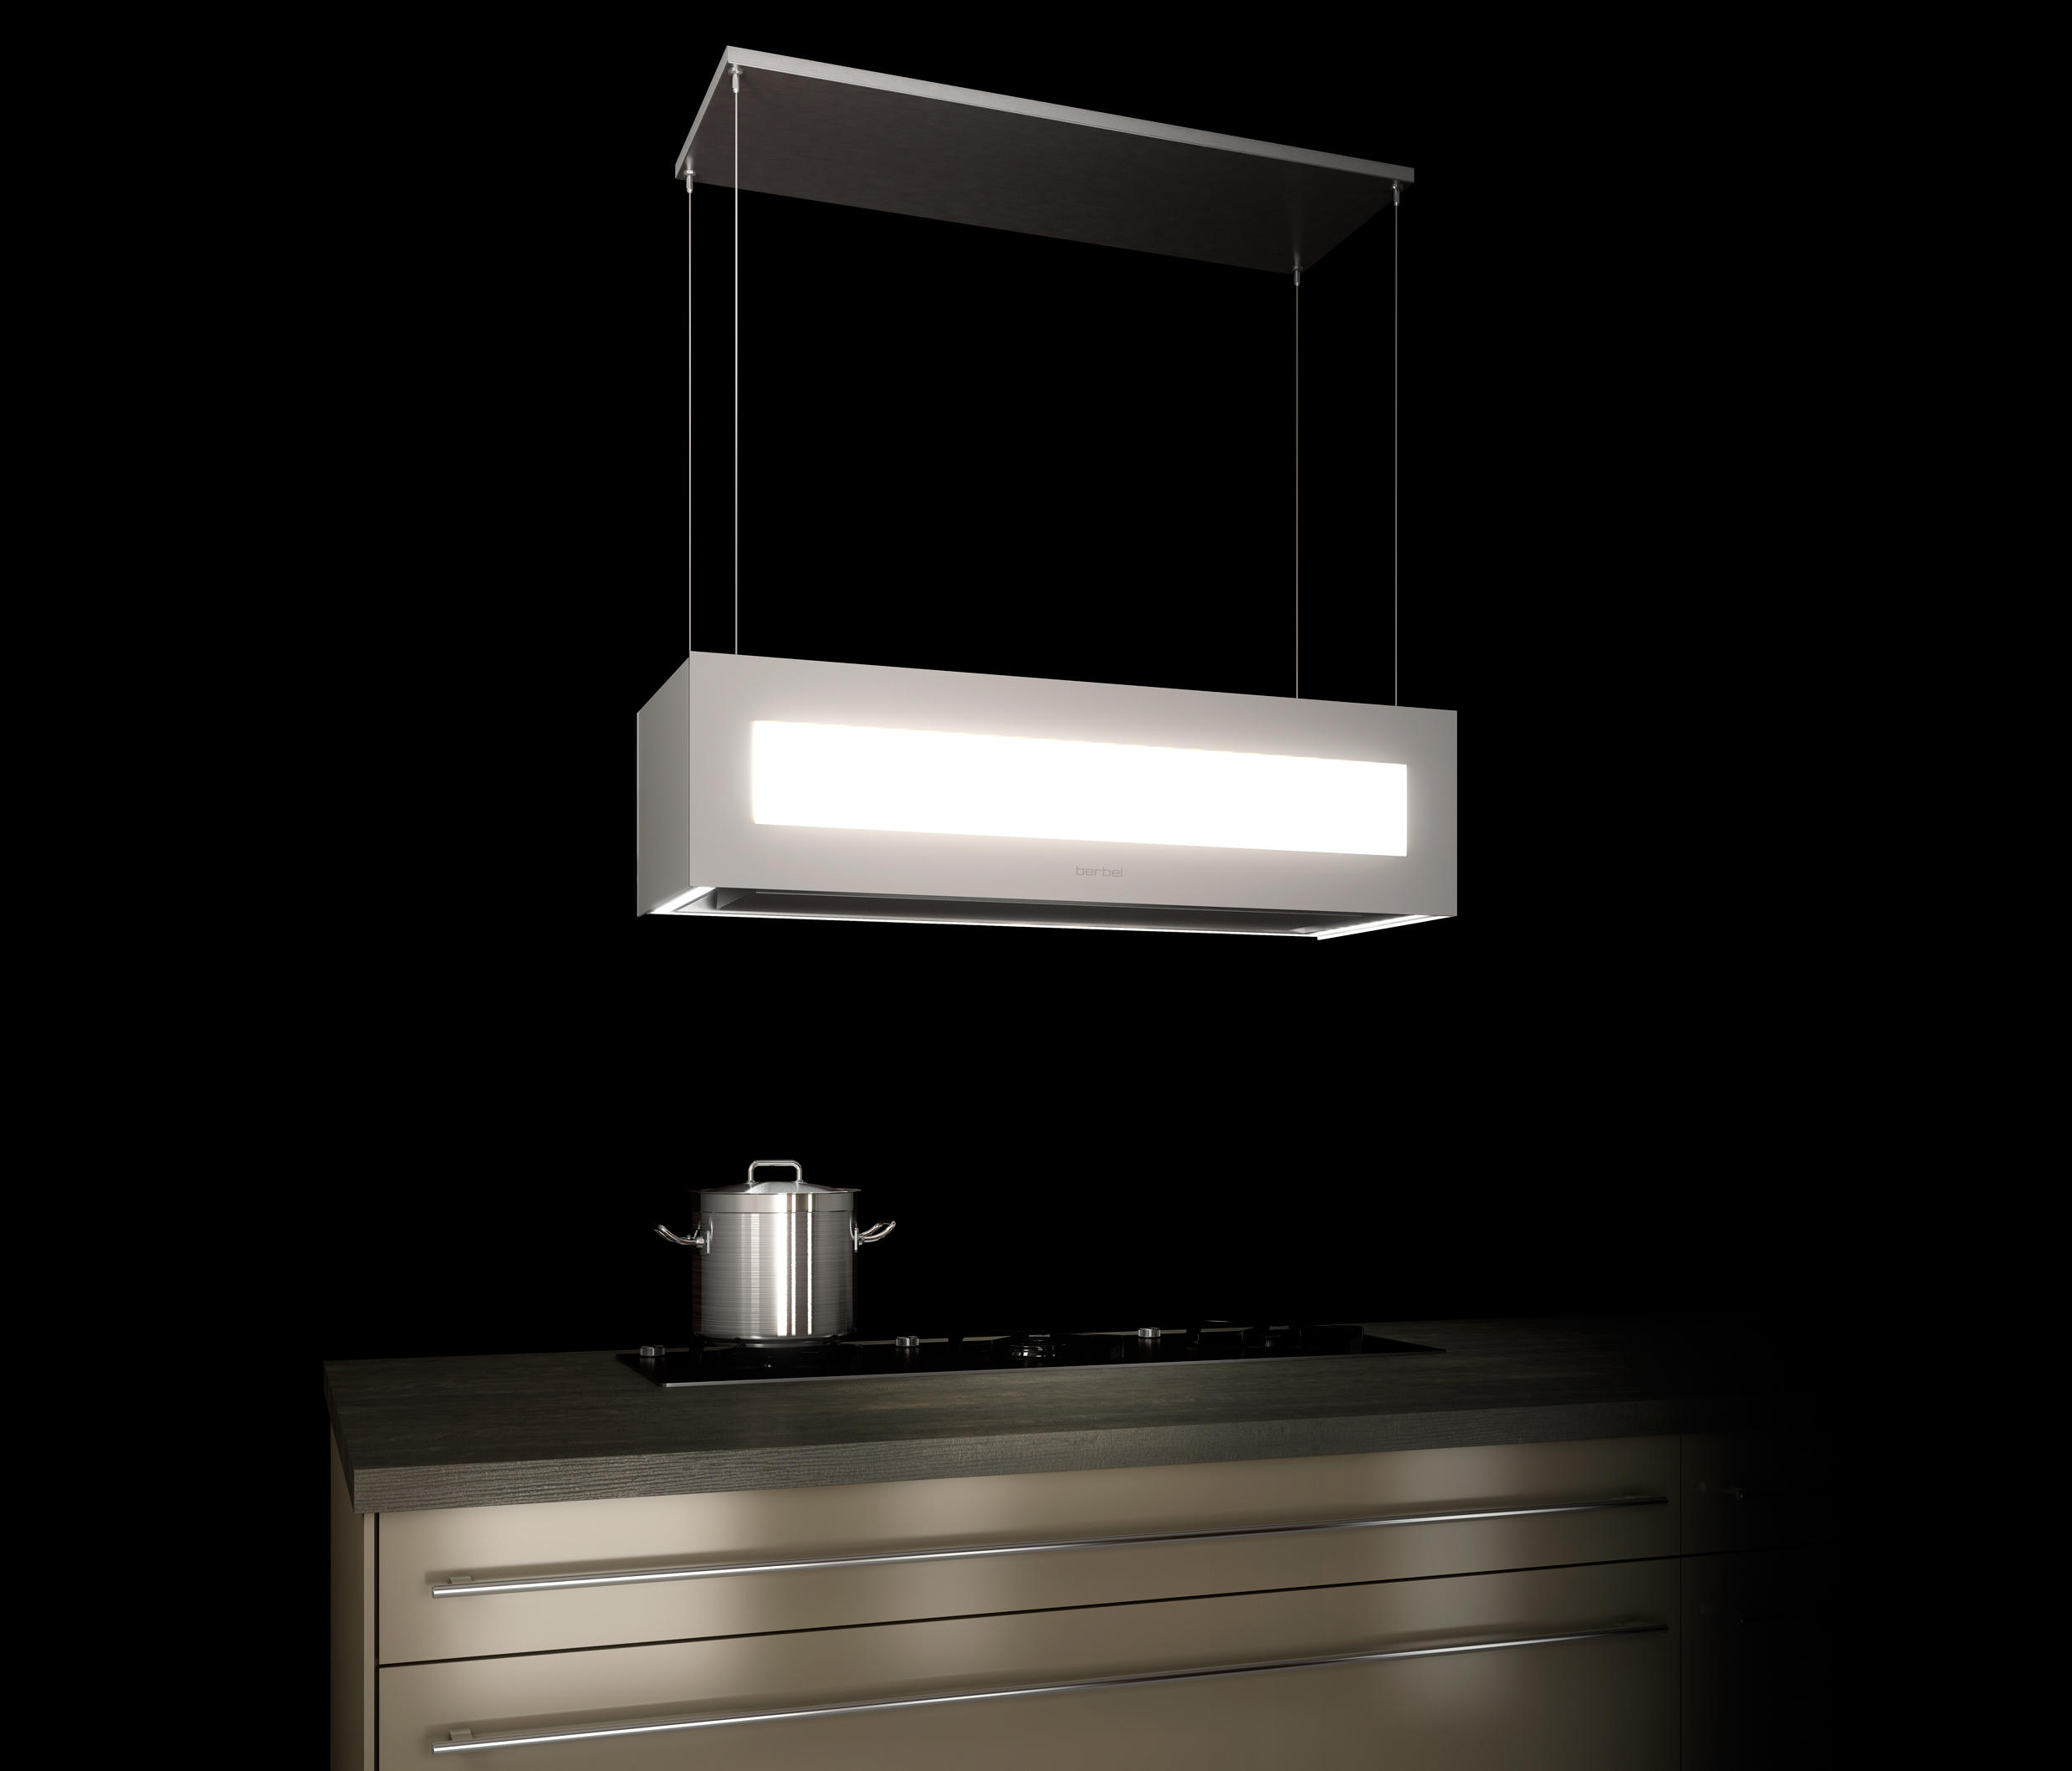 ceiling lift hood skyline edge extractors from berbel. Black Bedroom Furniture Sets. Home Design Ideas